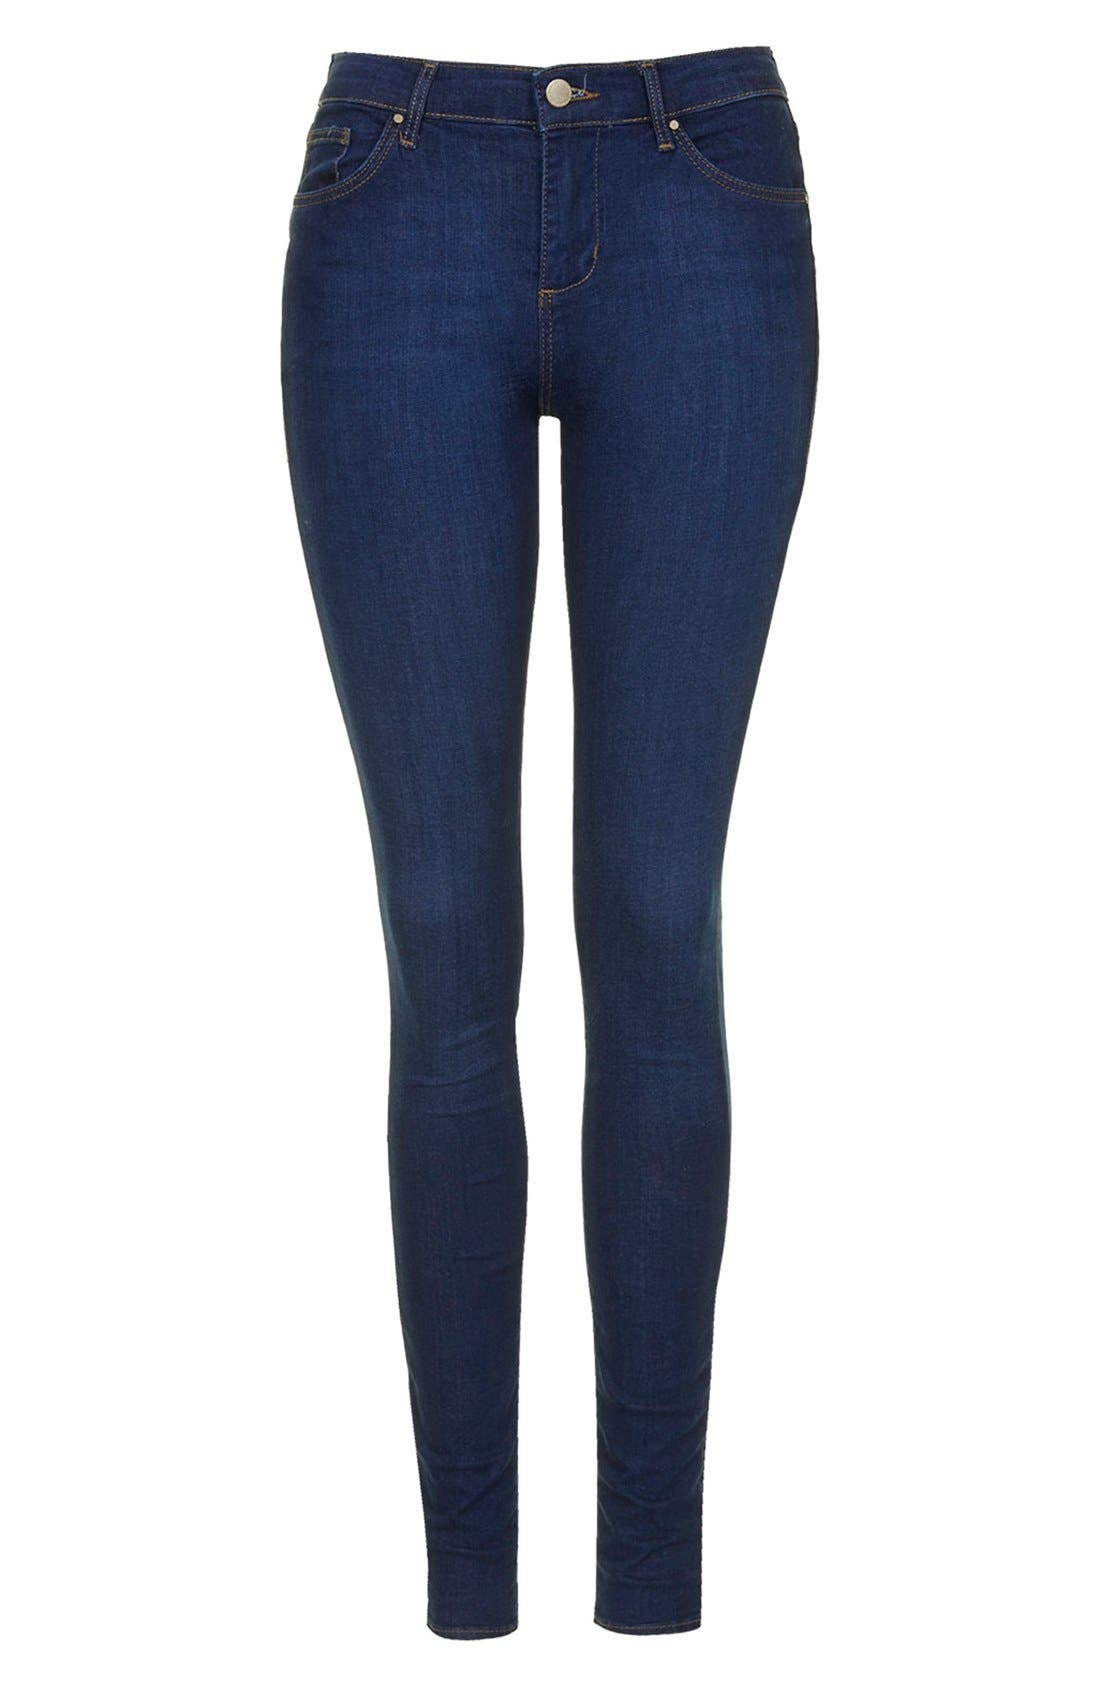 Moto 'Leigh' Ankle Skinny Jeans,                             Alternate thumbnail 6, color,                             410